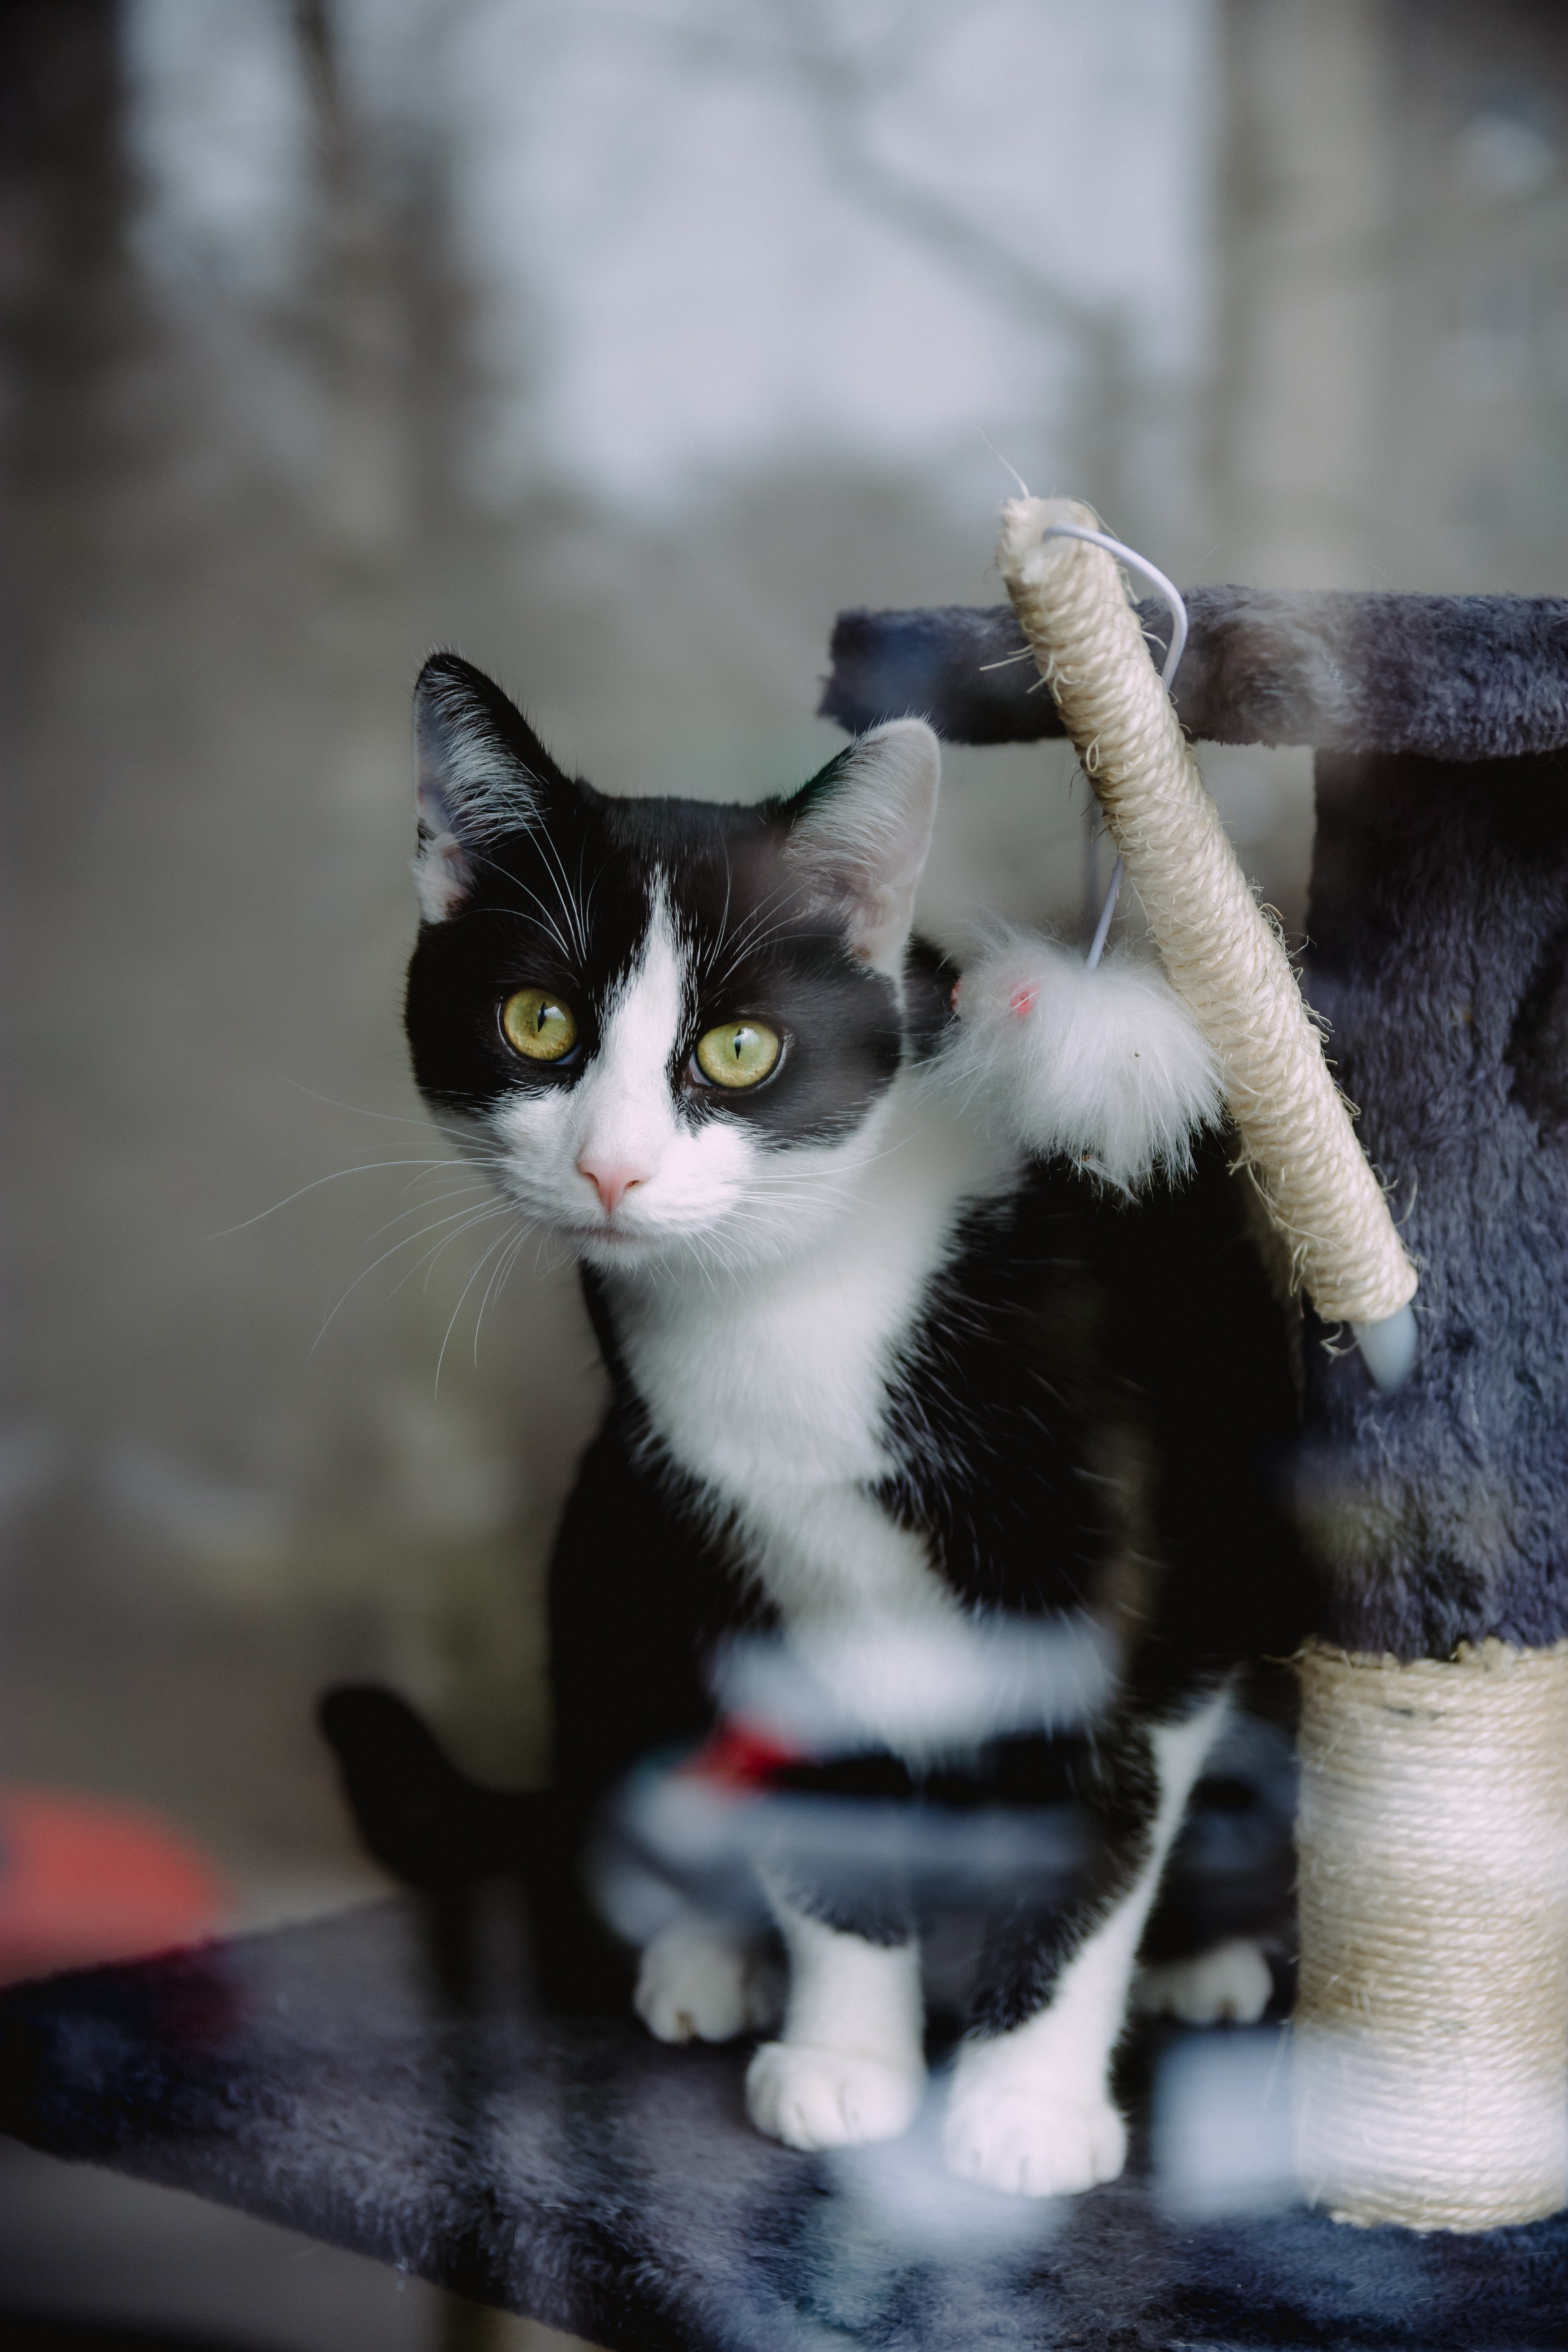 tuxedo cat on gray cat condo